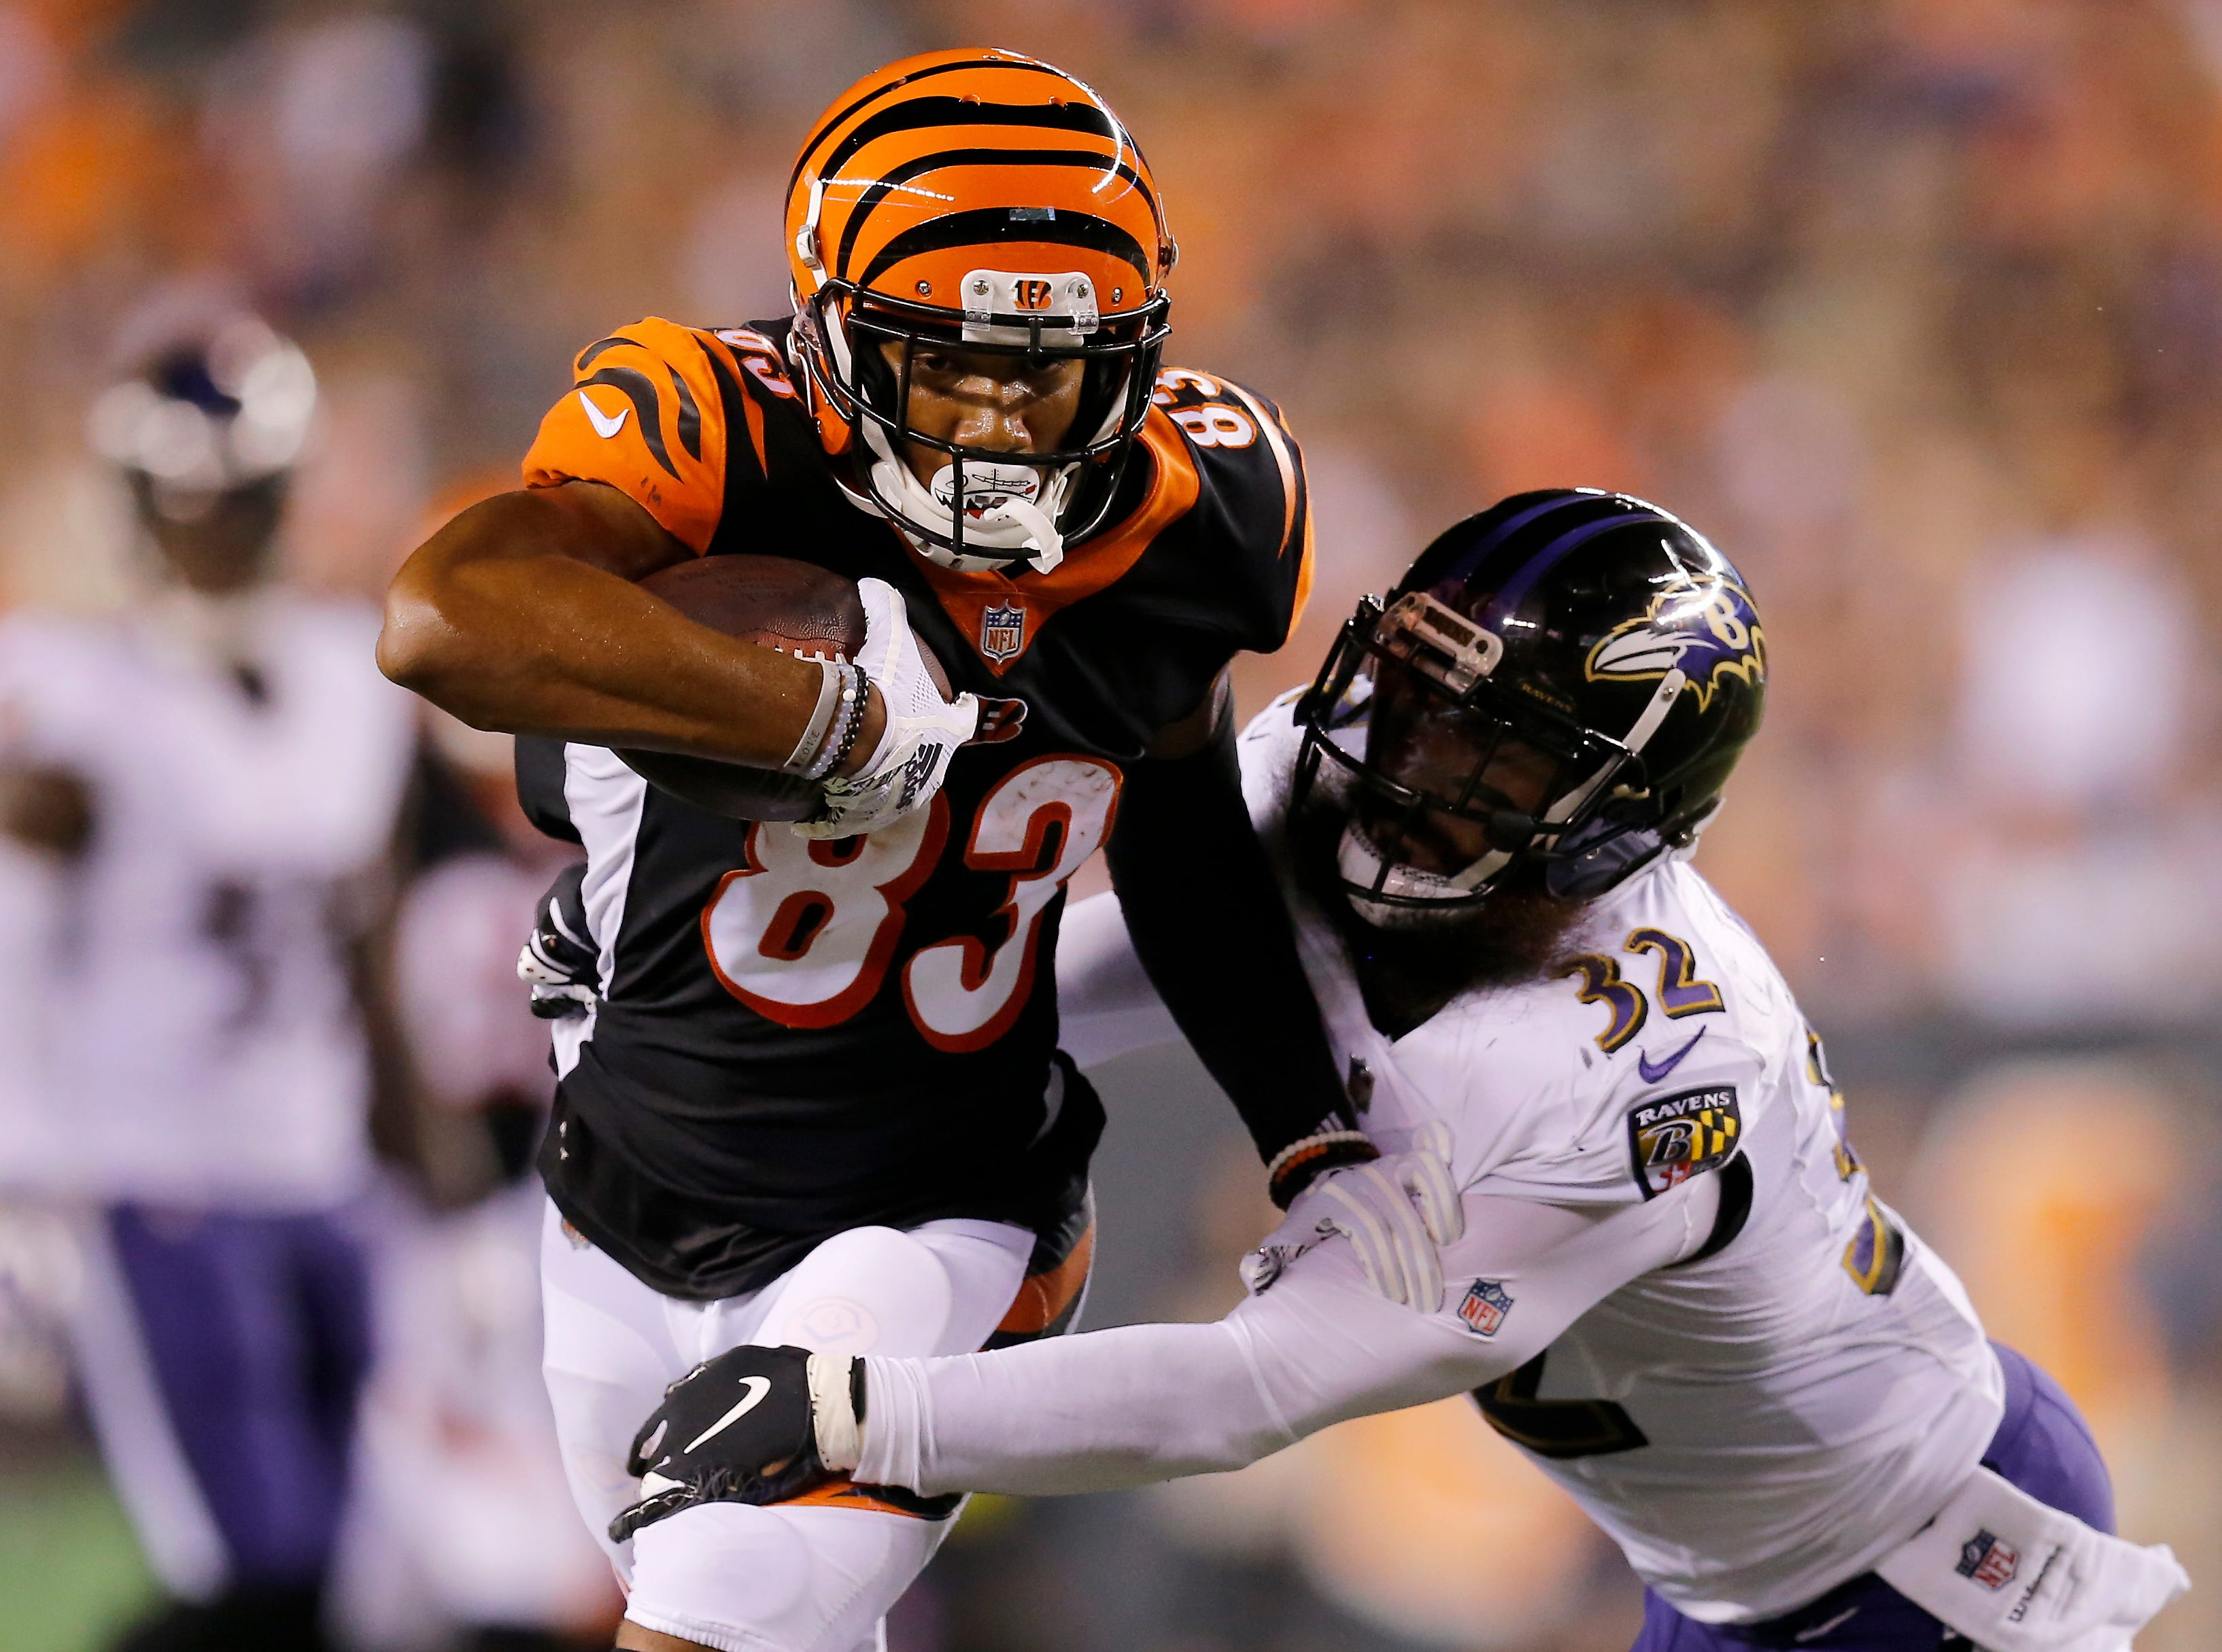 Cincinnati Bengals wide receiver Tyler Boyd (83) fights a tackle from Baltimore Ravens defensive back Eric Weddle (32) in the second quarter of the NFL Week 2 game between the Cincinnati Bengals and the Baltimore Ravens at Paul Brown Stadium in downtown Cincinnati on Thursday, Sept. 13, 2018. The Bengals led 28-14 at halftime.